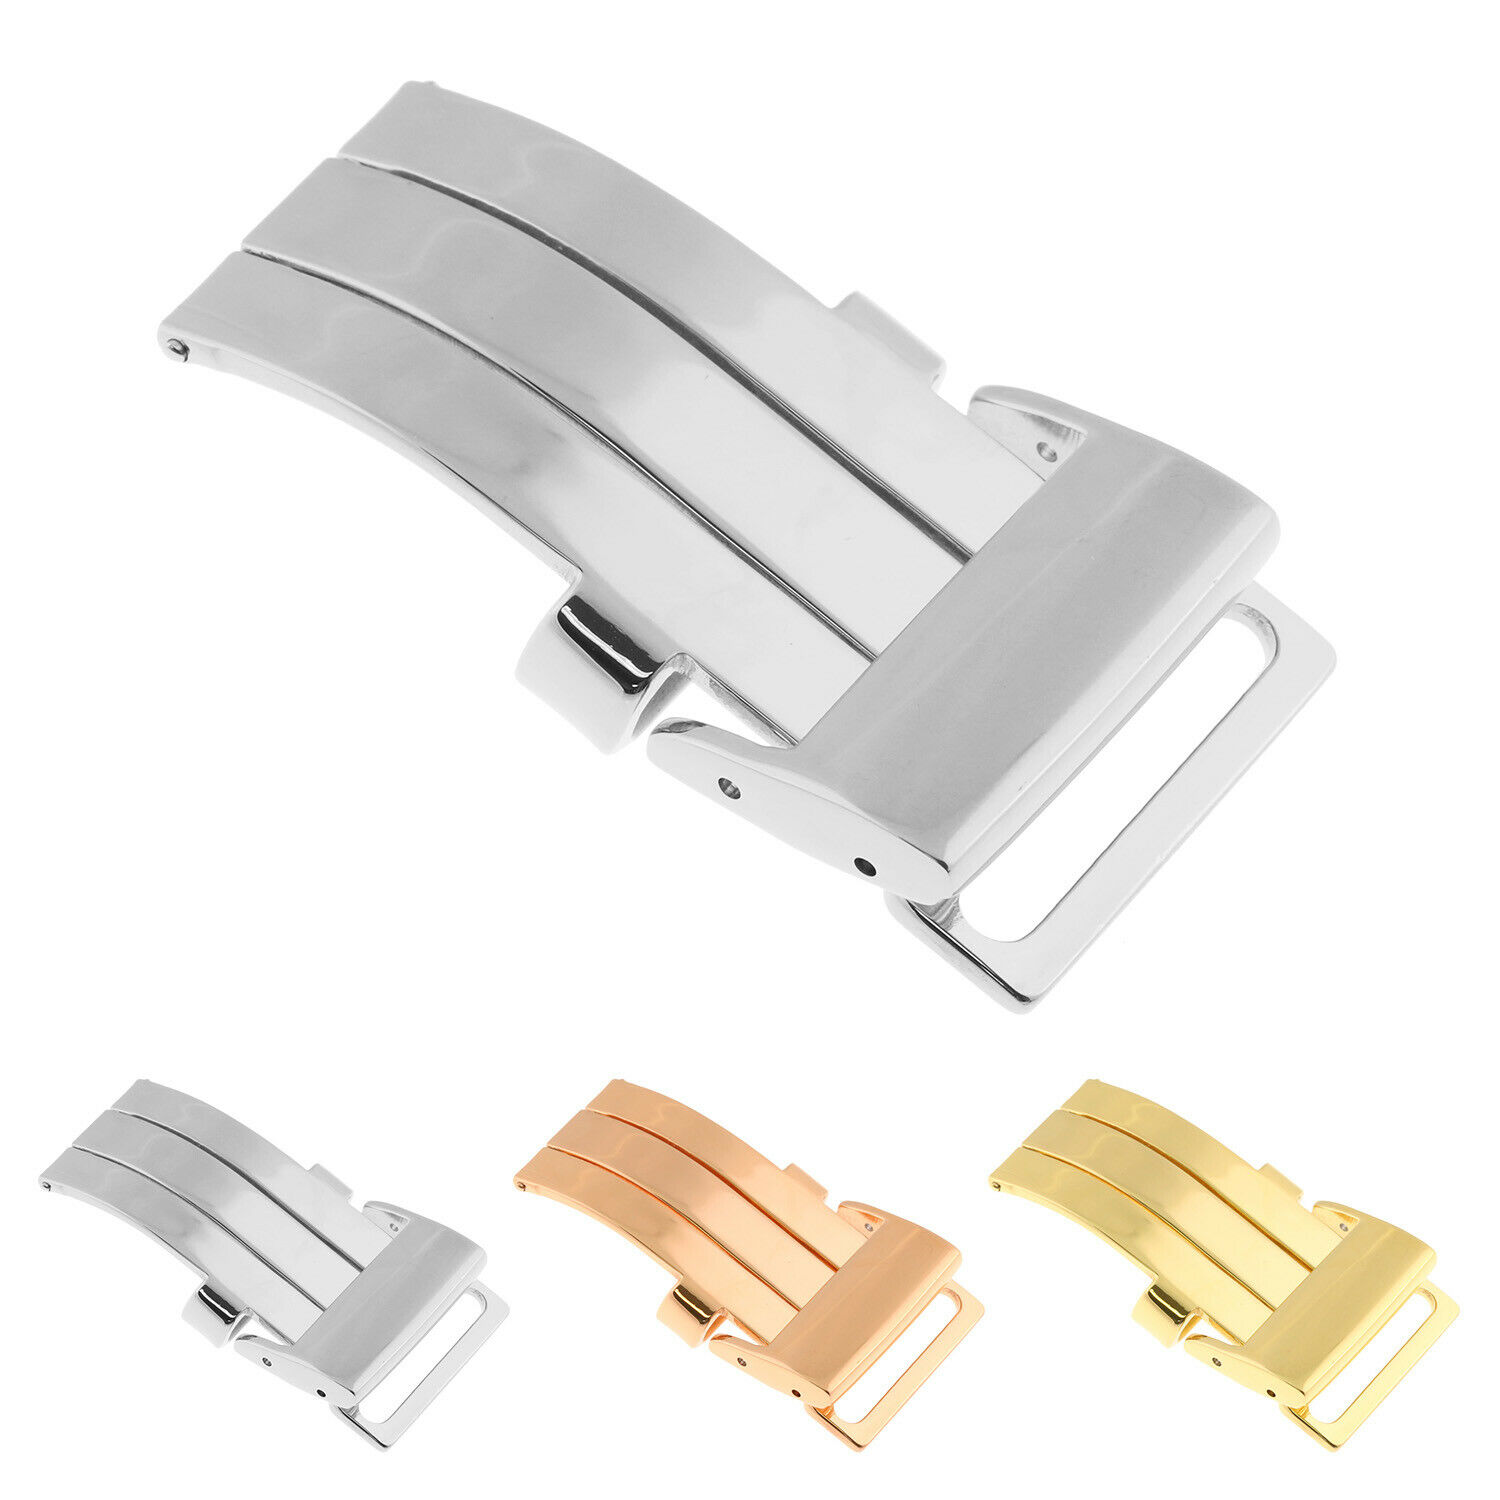 STAINLESS STEEL SPRING RELEASE DEPLOYMENT CLASP CAN EASILY REPLACE YOUR BUCKLE